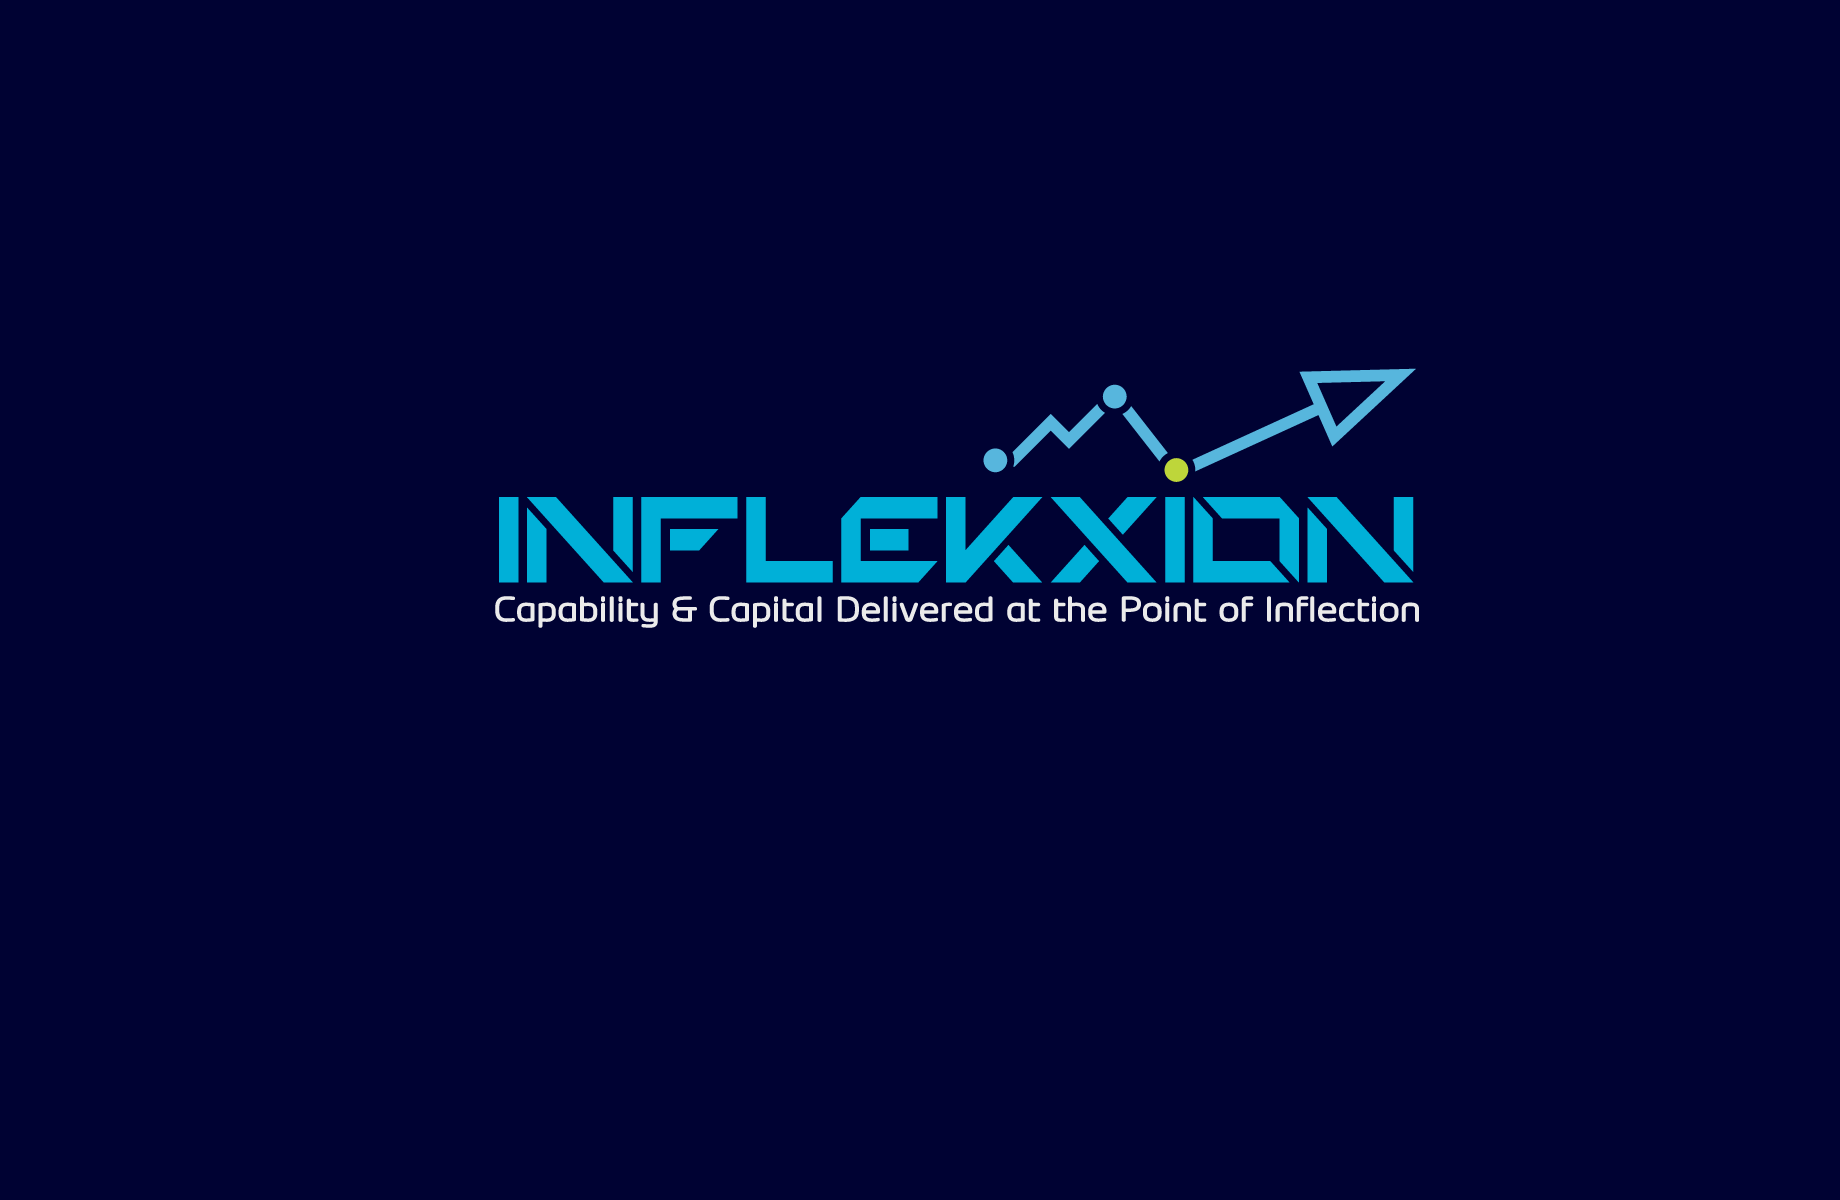 Logo Design by Jan Chua - Entry No. 140 in the Logo Design Contest Professional Logo Design for Inflekxion.